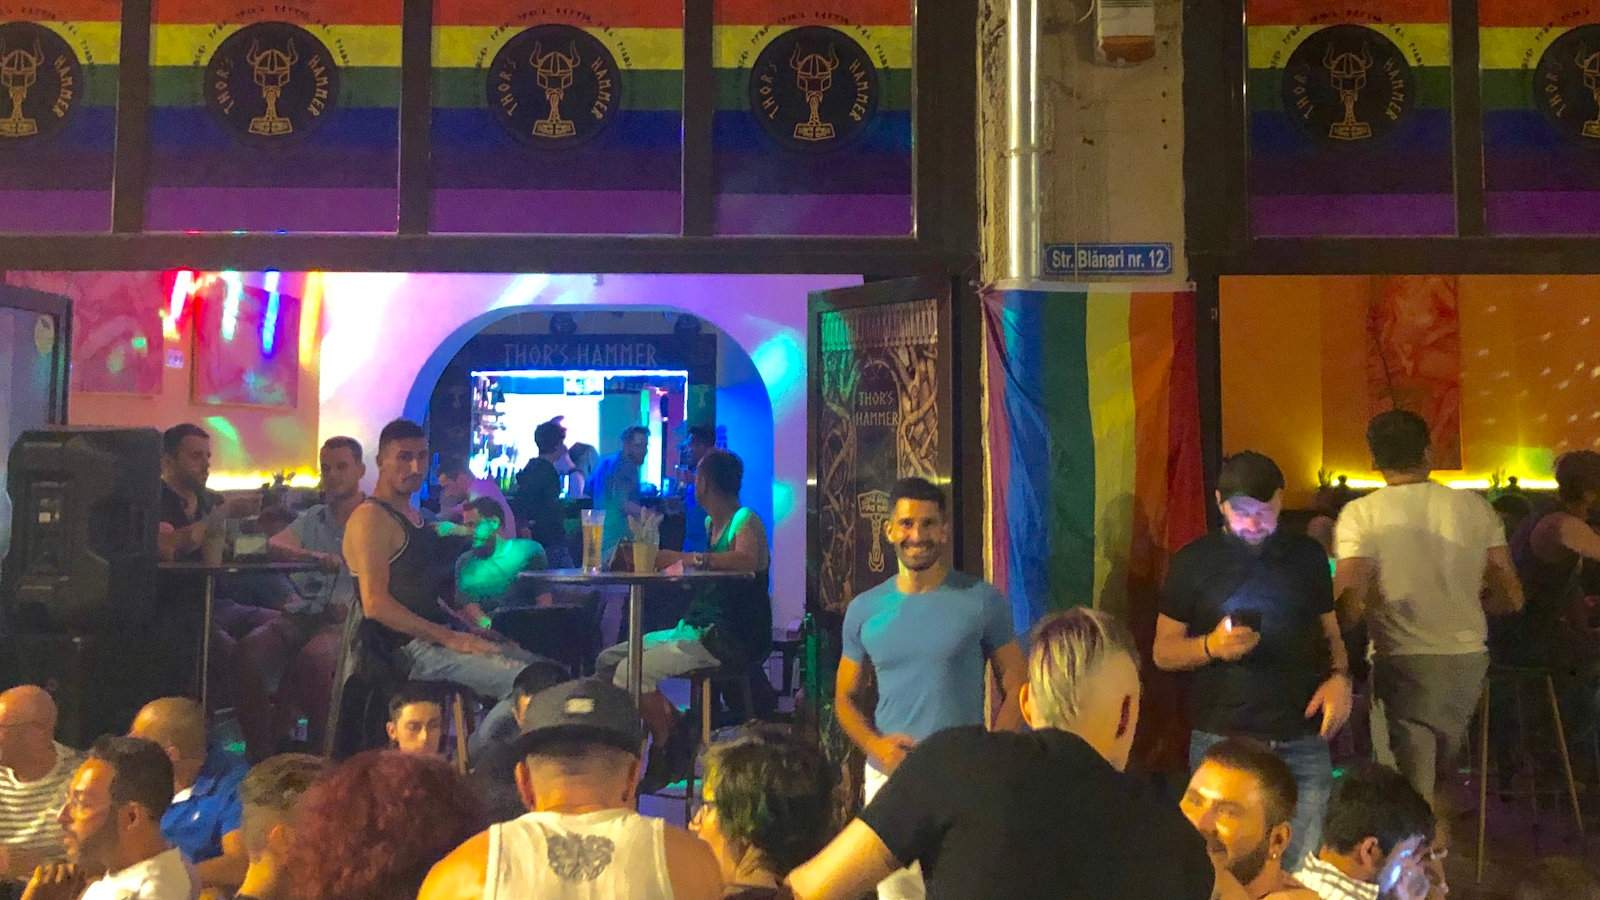 Thor's Hammer is Bucharest's only official gay club, with a lovely terrace and a fun vibe